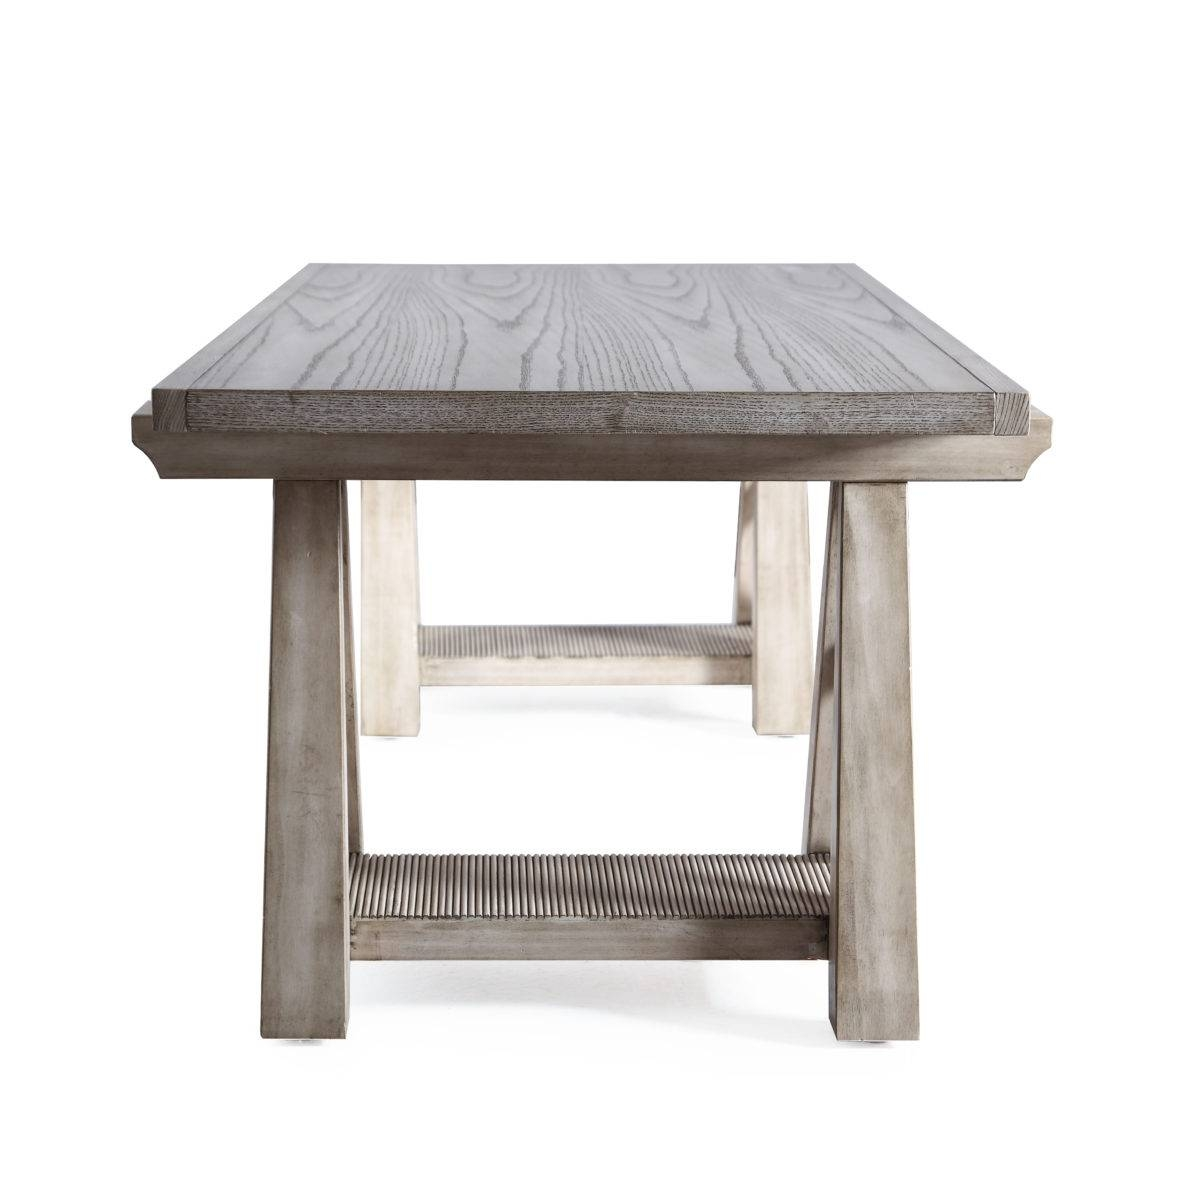 Griffin Coffee Table ~ Grey Mist | Hives And Honey intended for Griffin Coffee Tables (Image 16 of 30)